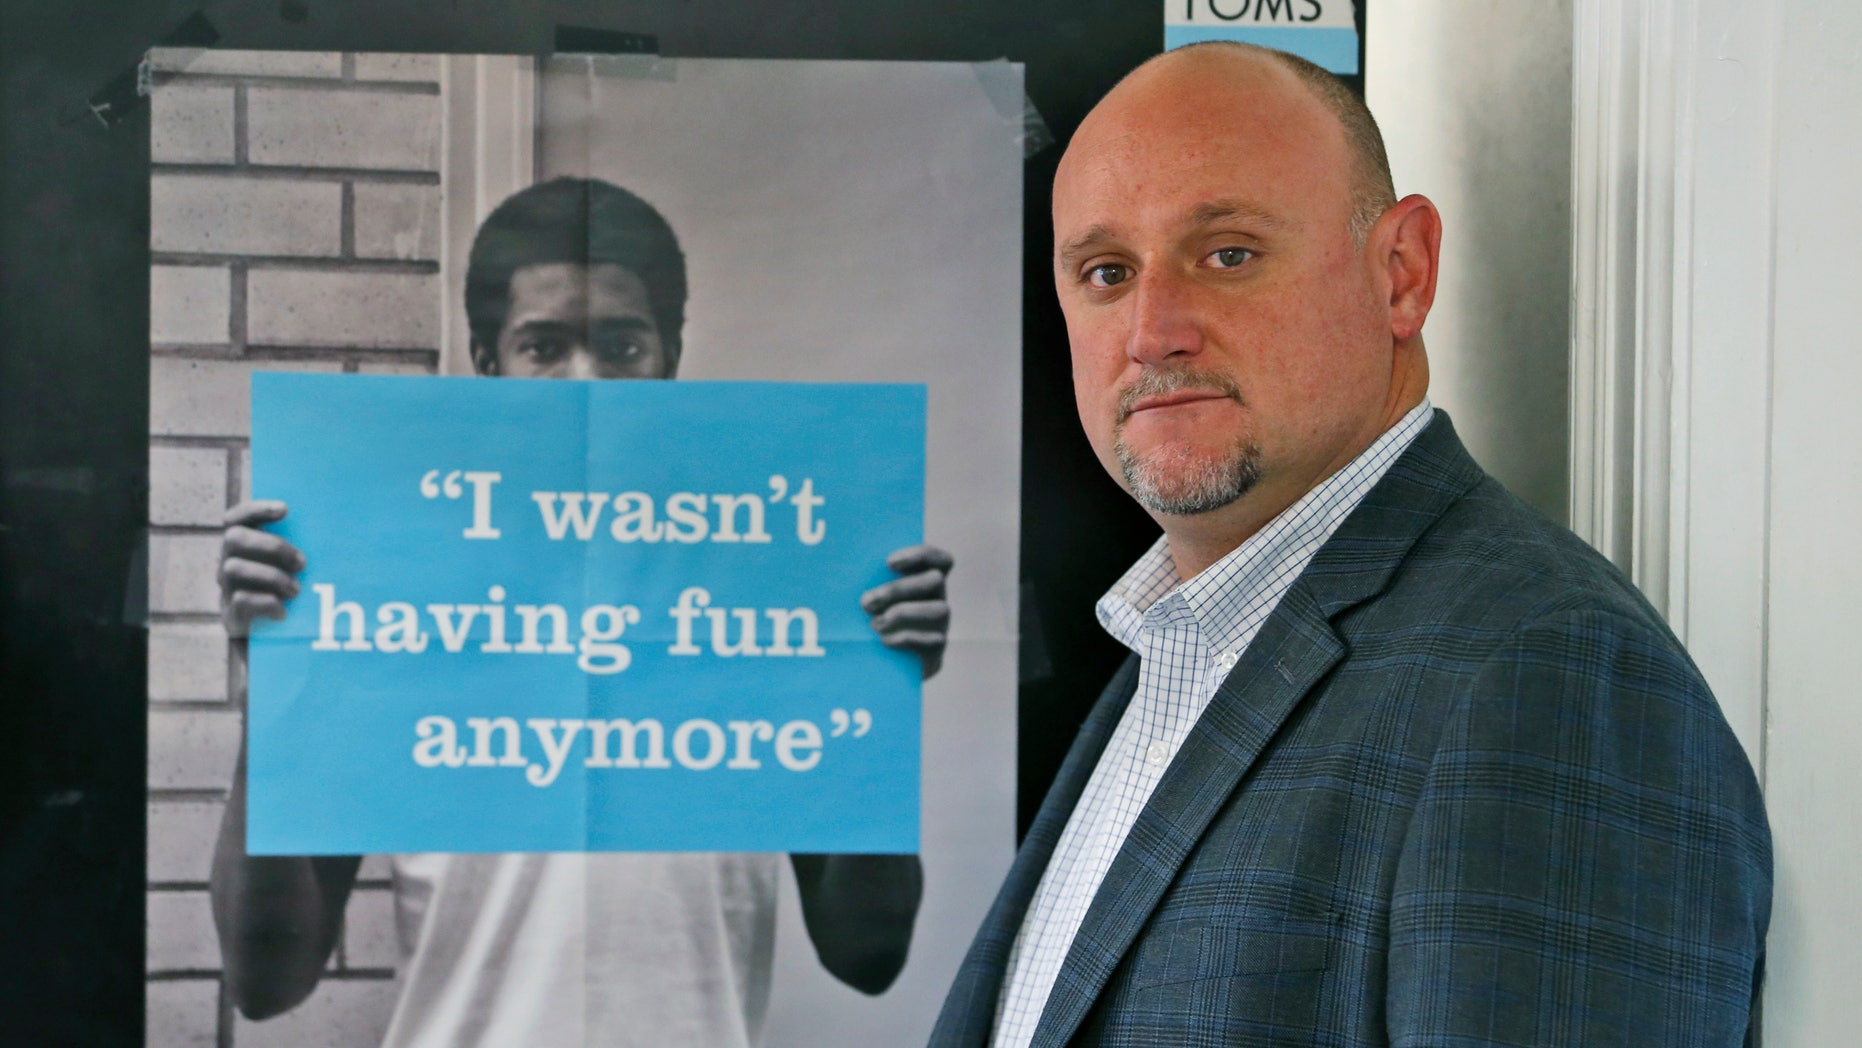 In this Monday, Dec. 5, 2016, photo, David Rook, operations manager for the McShin Foundation, poses next to a poster in the foundation's offices in Richmond, Va.